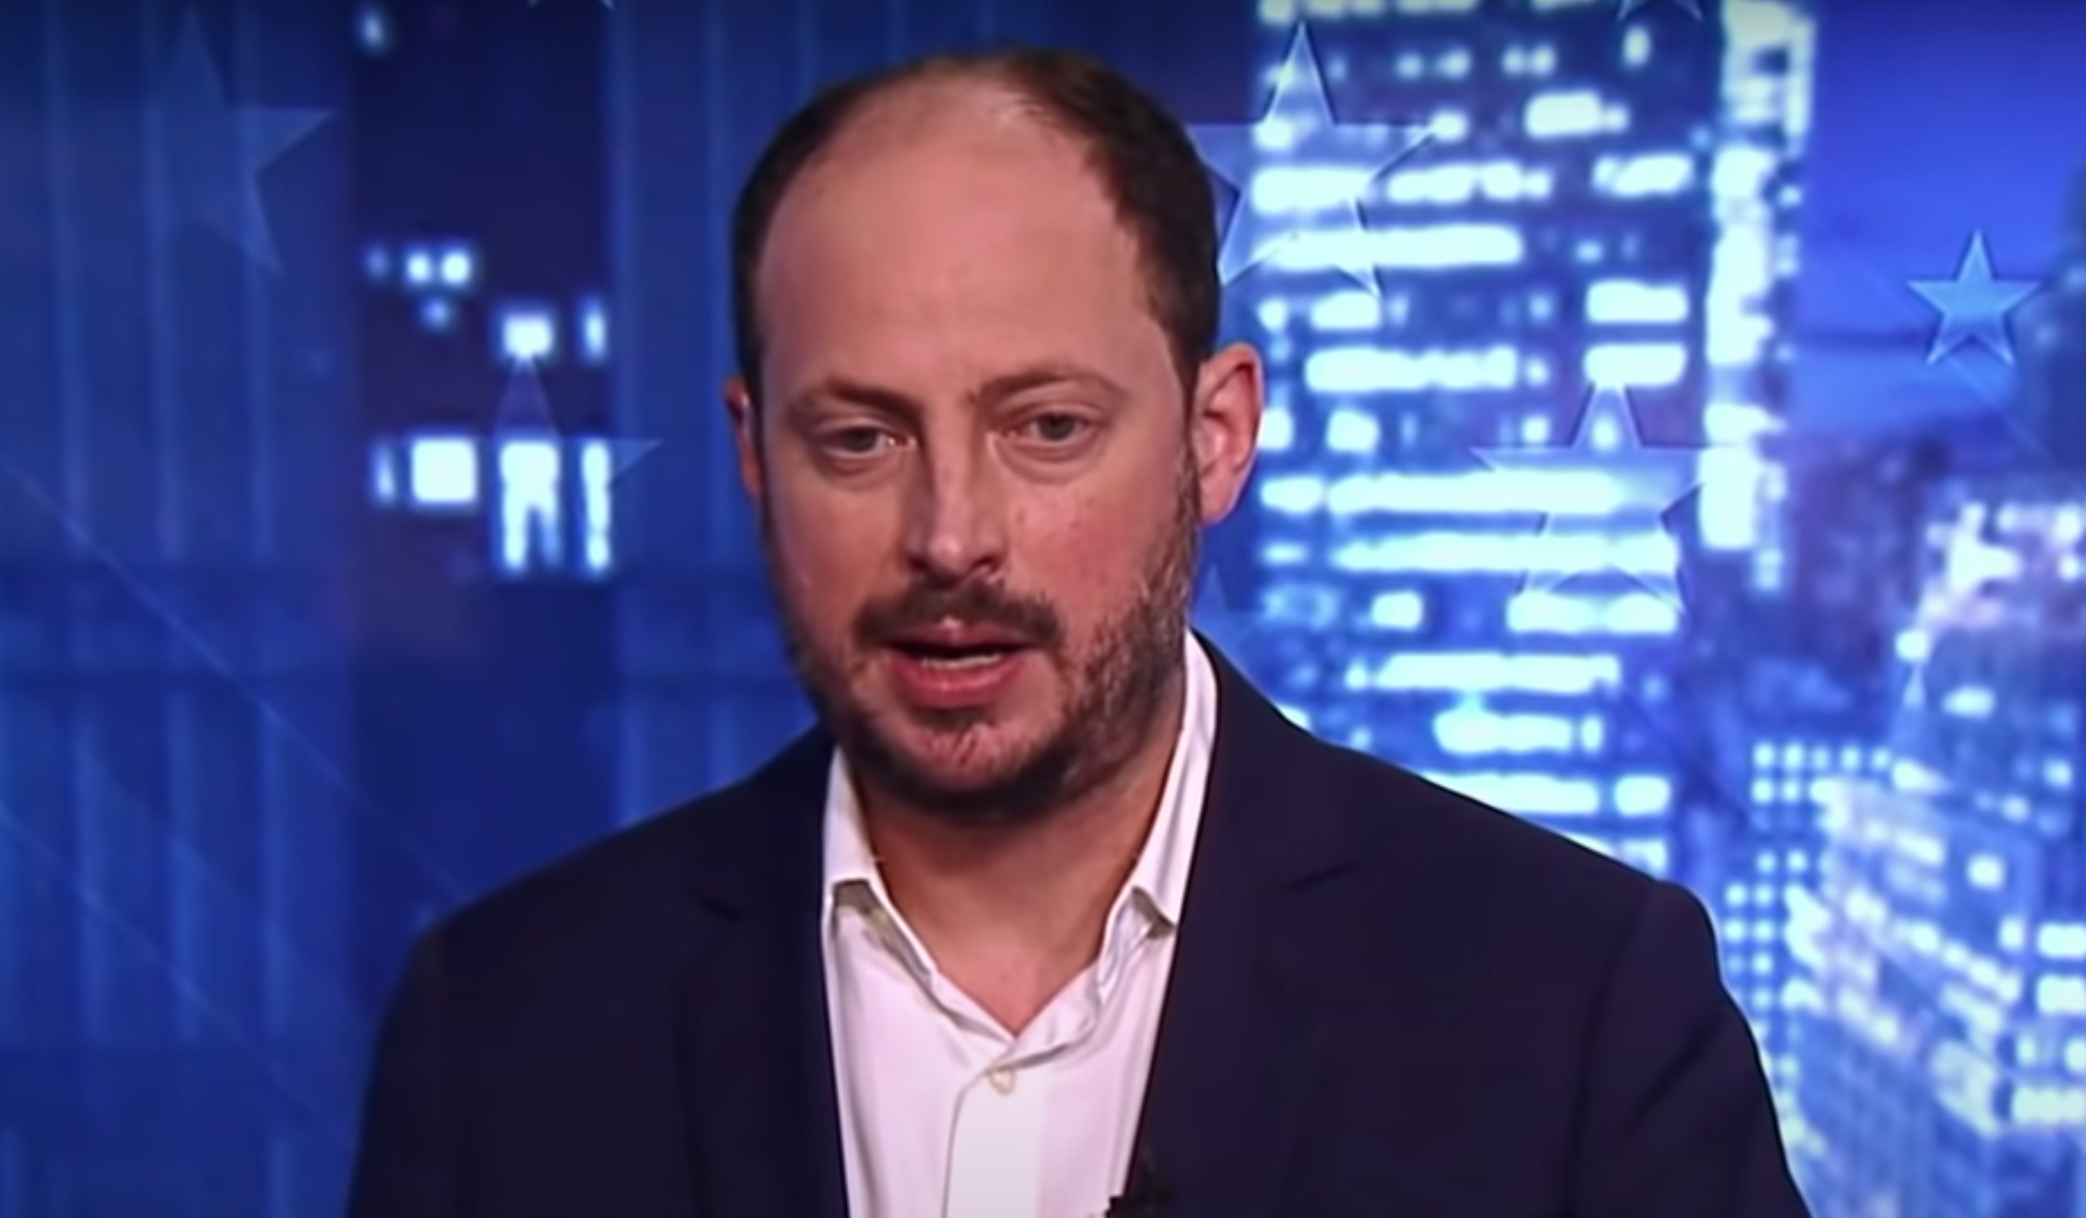 Nate Silver appearing on ABC News